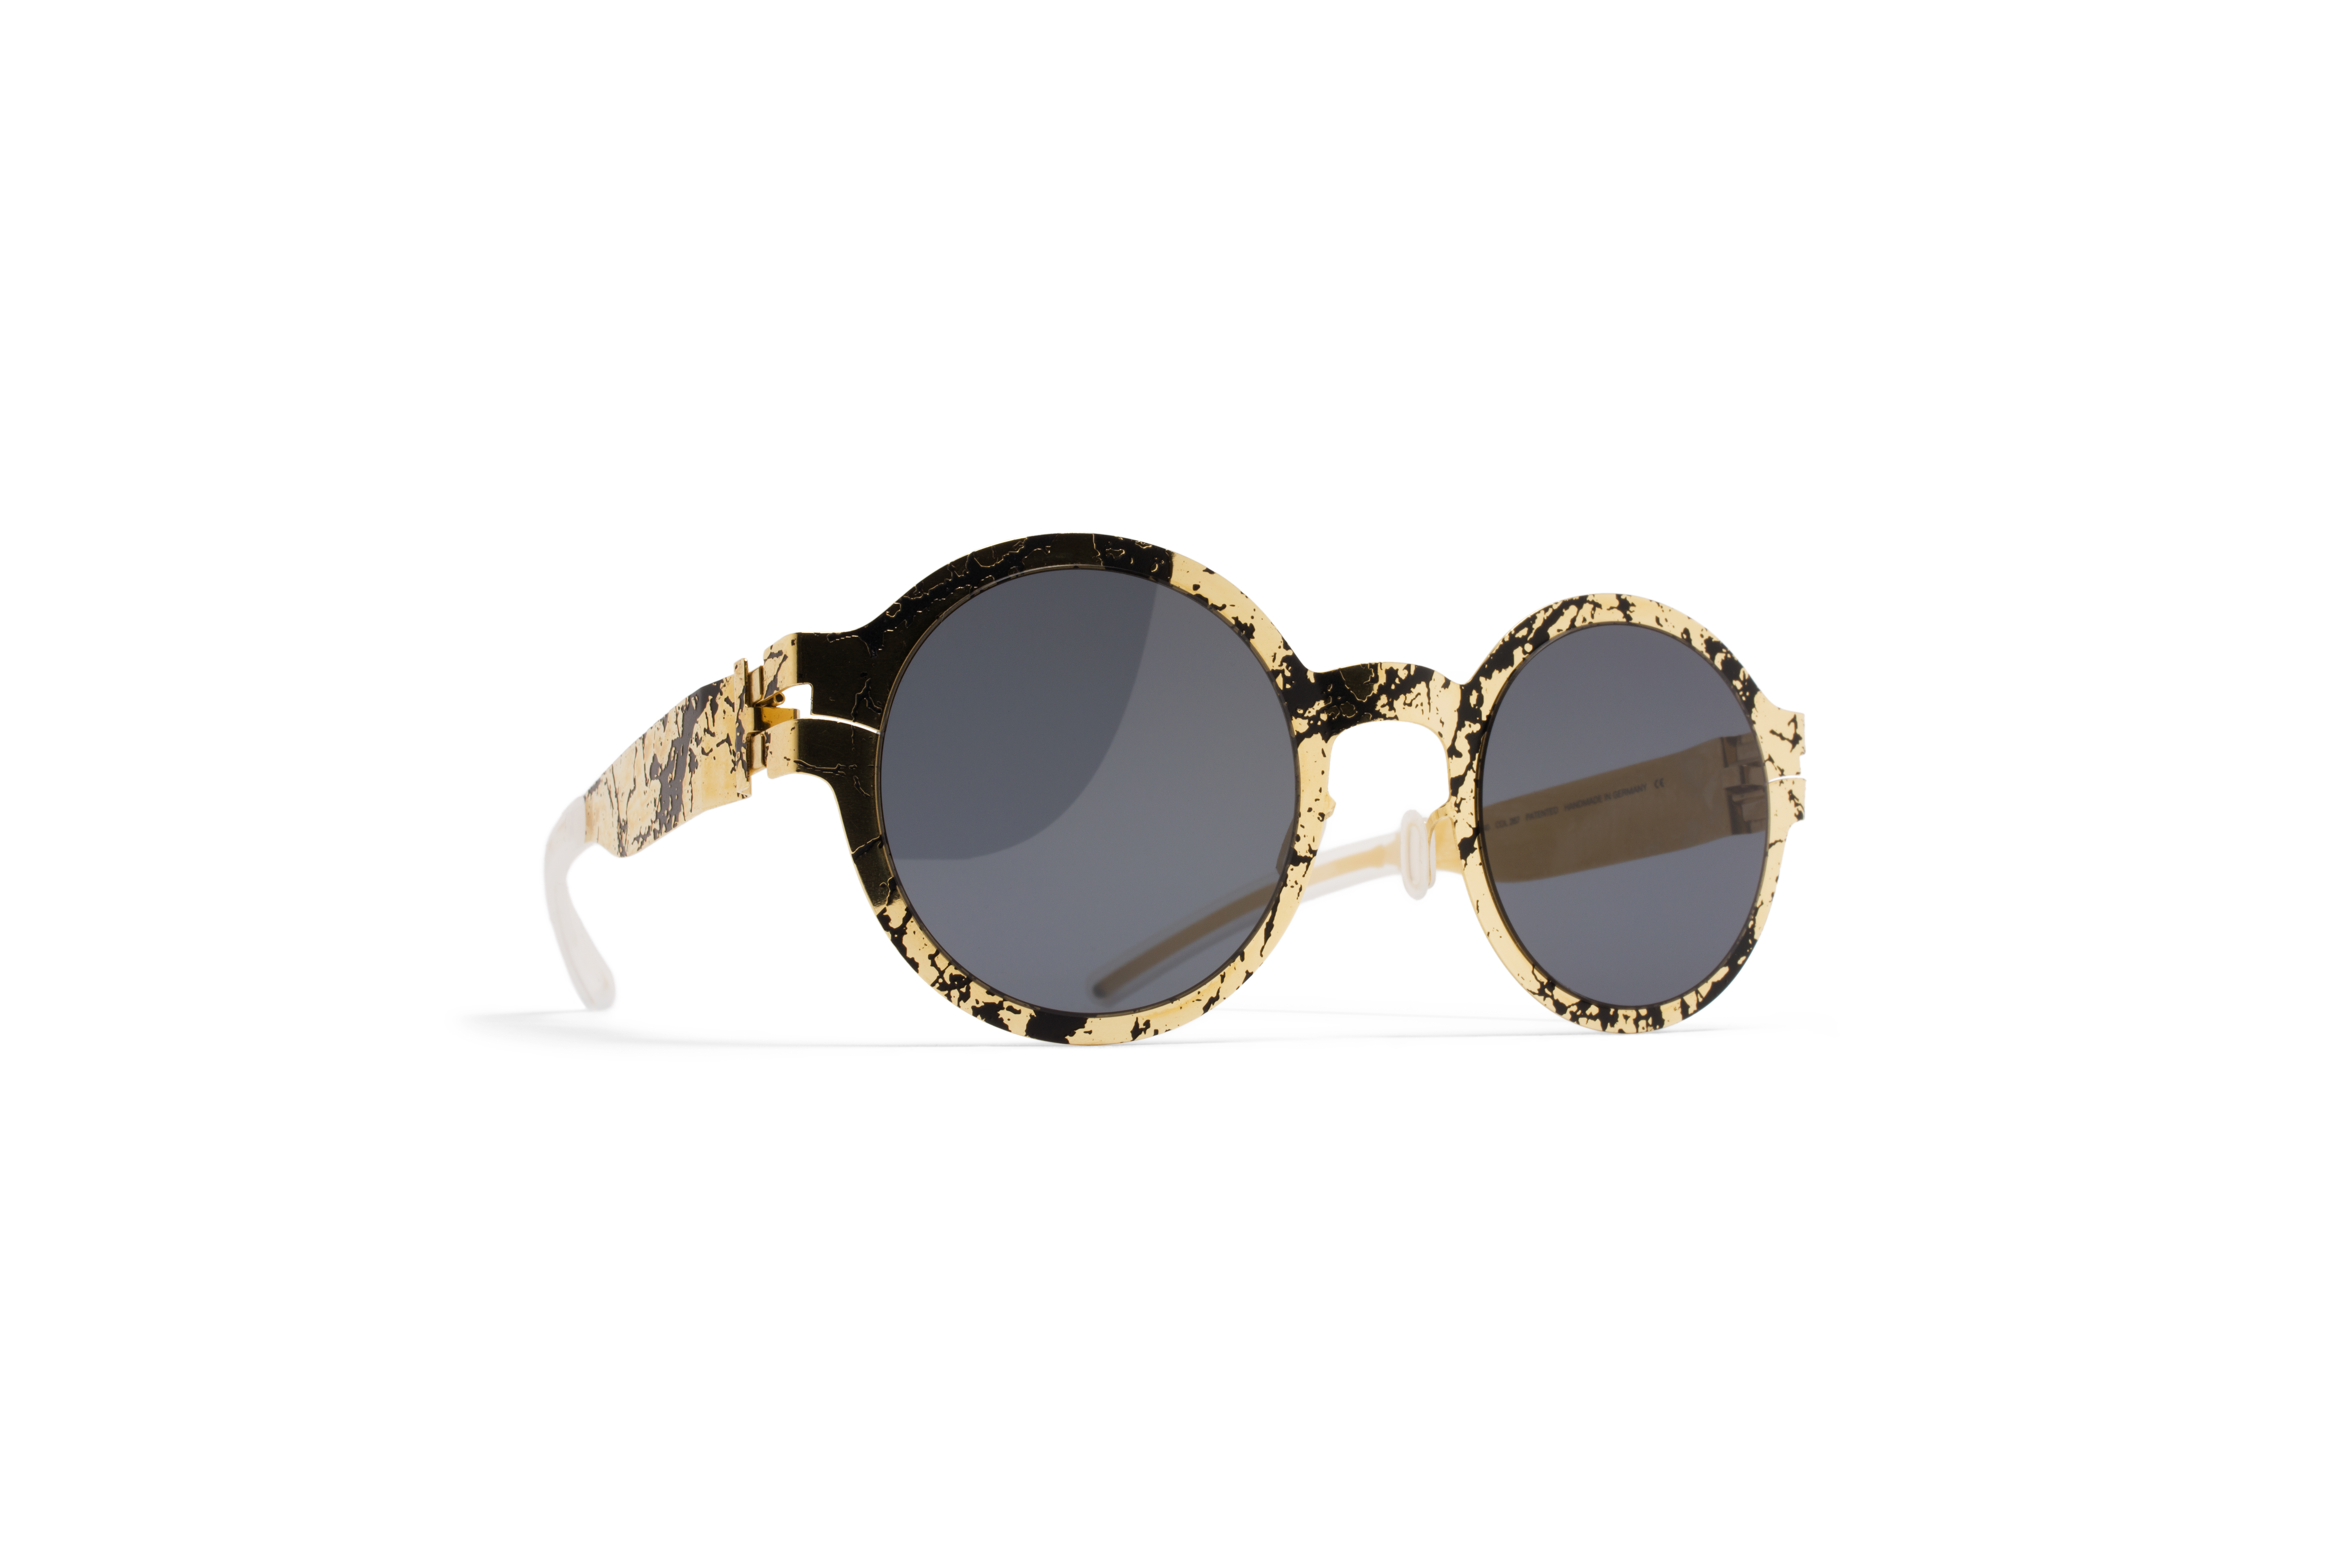 MYKITA Mm Sun Mmtransfer003 Gold Black Stone Dar58a45382b7443